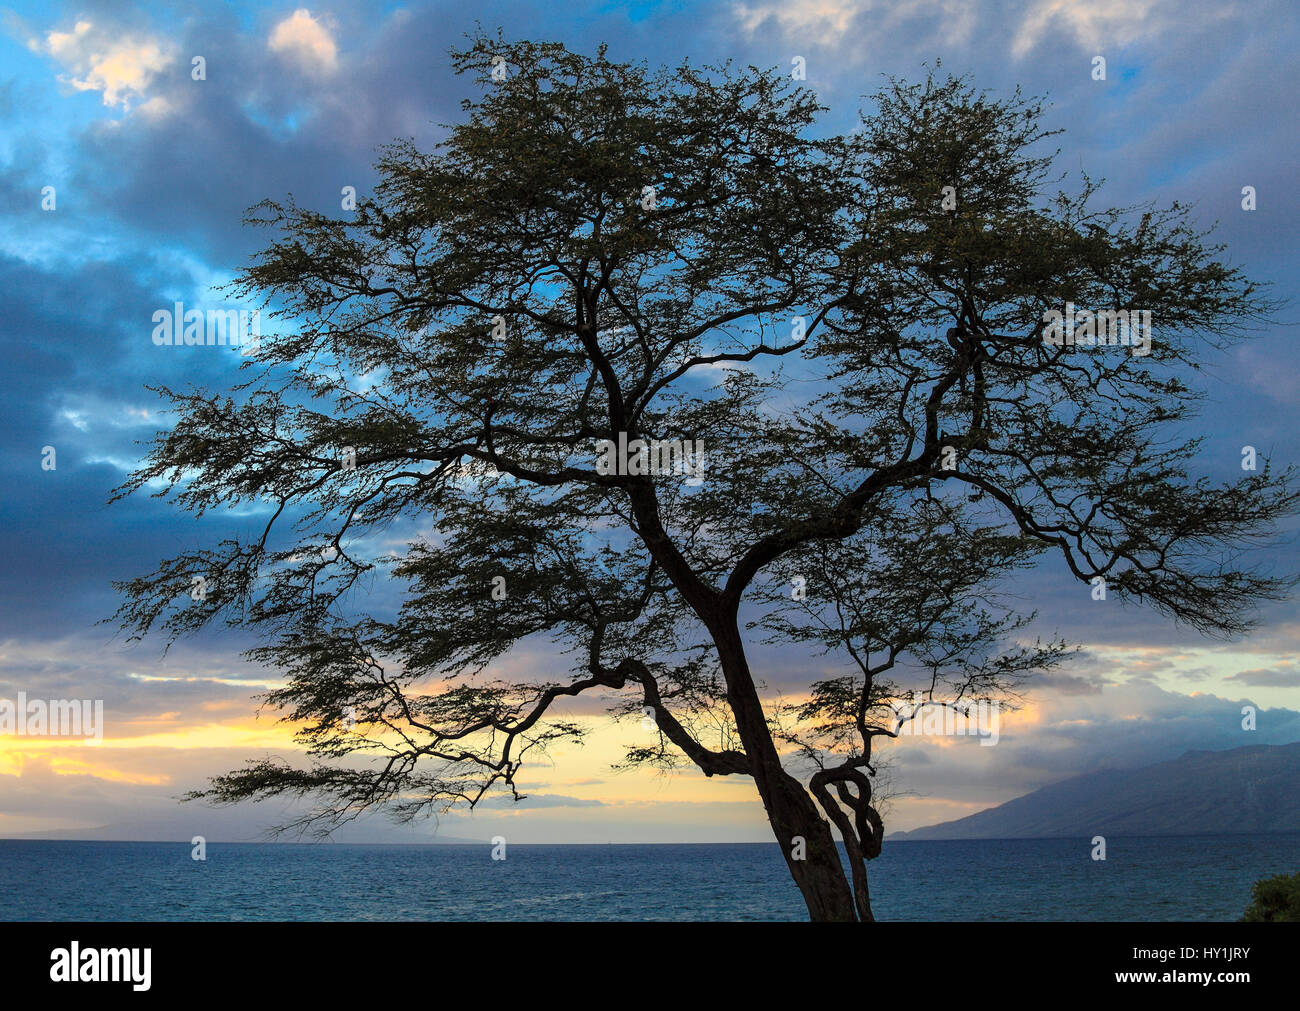 Branch of tree along Wailea coastal walkway in Maui appears to be shaped like numeral 8 when viewed at certain point Stock Photo